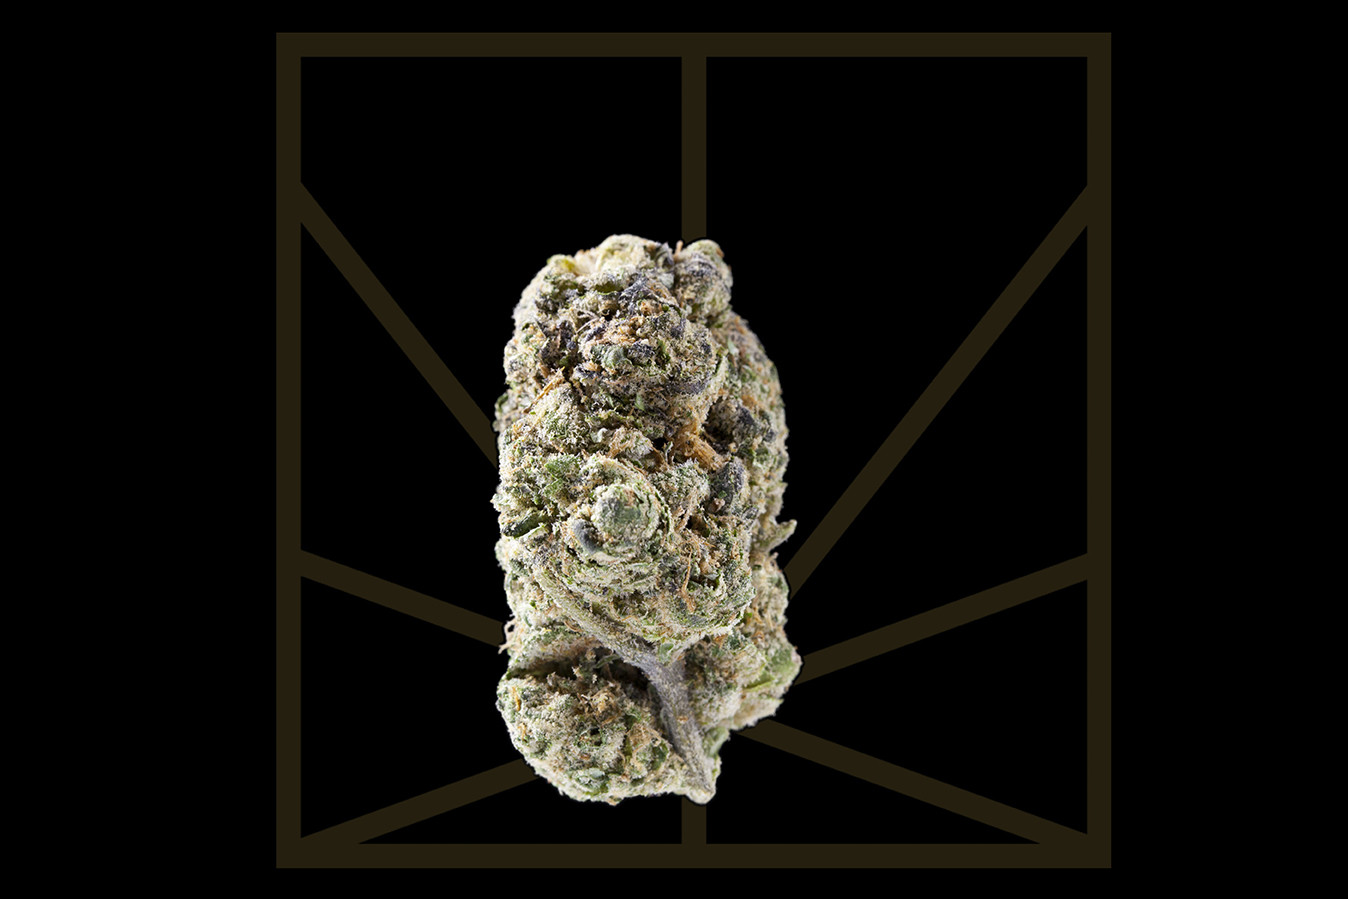 "<p><em>""Blow out your speakers, roll some more loud. That's the sound of the reefer, I think my parents is proud.""</em></p>